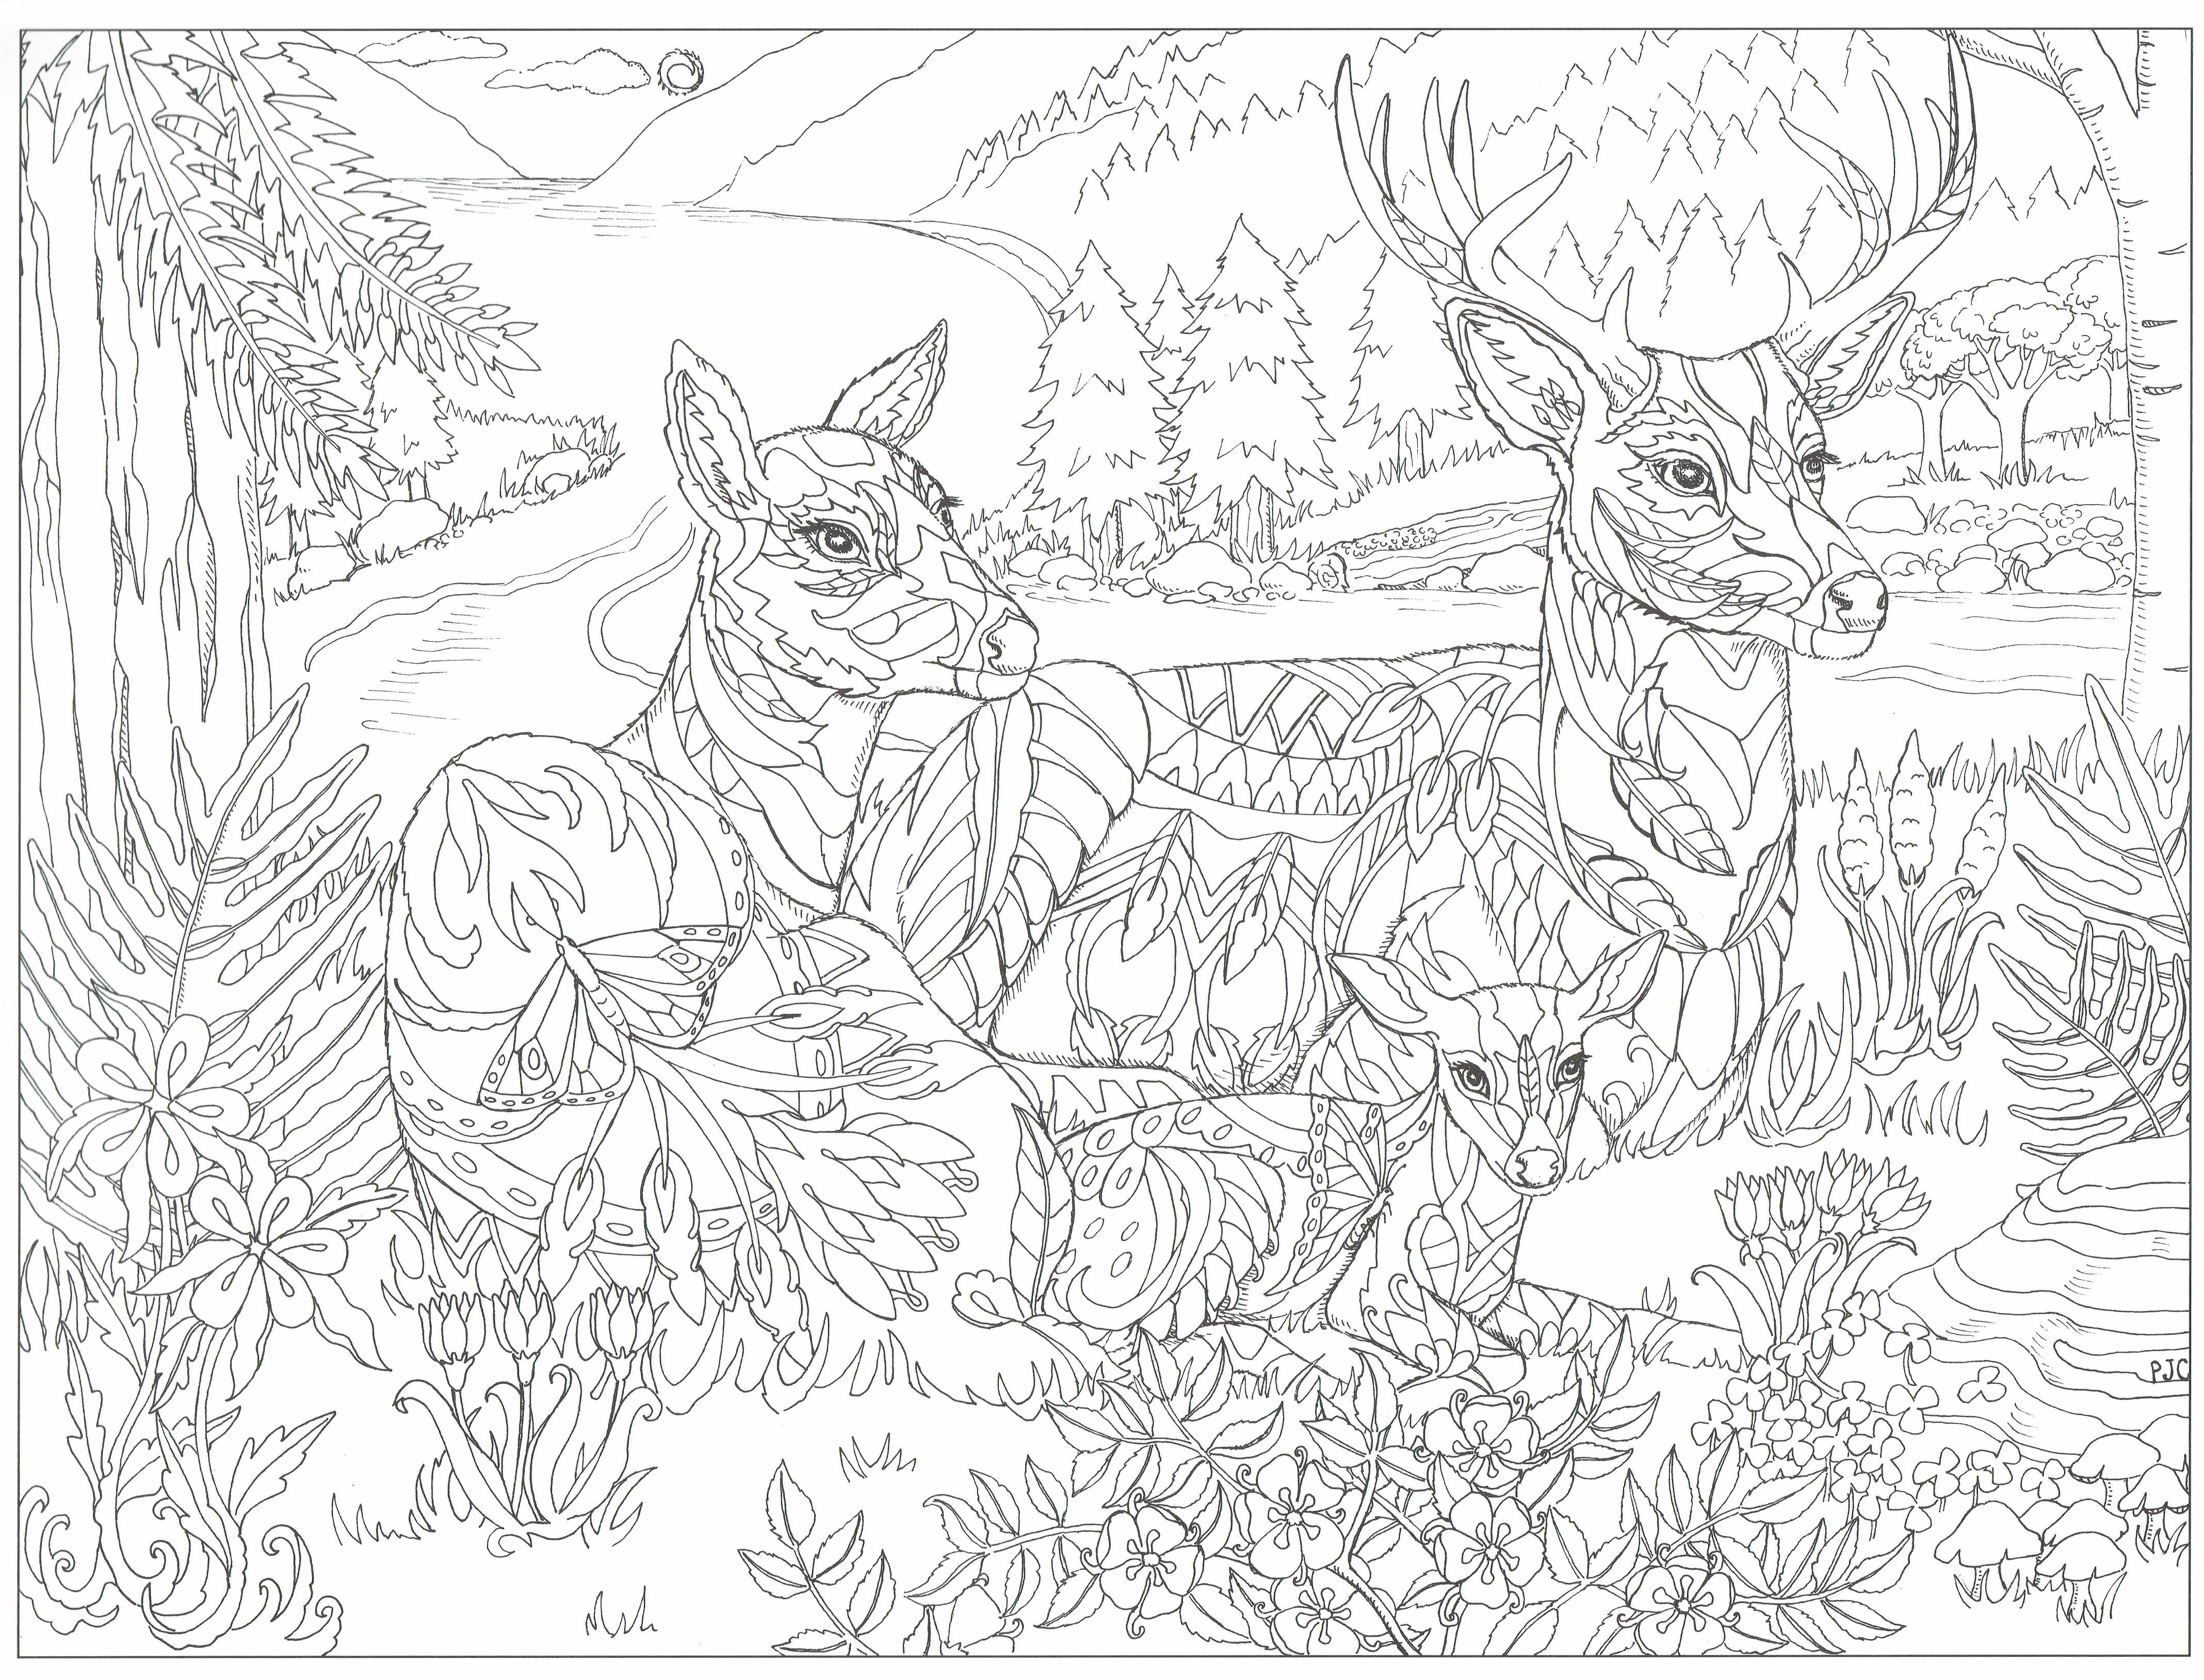 This Will Print On 11x17 Just As Nice As 8 5x11 Horse Coloring Pages Angel Coloring Pages Animal Coloring Pages